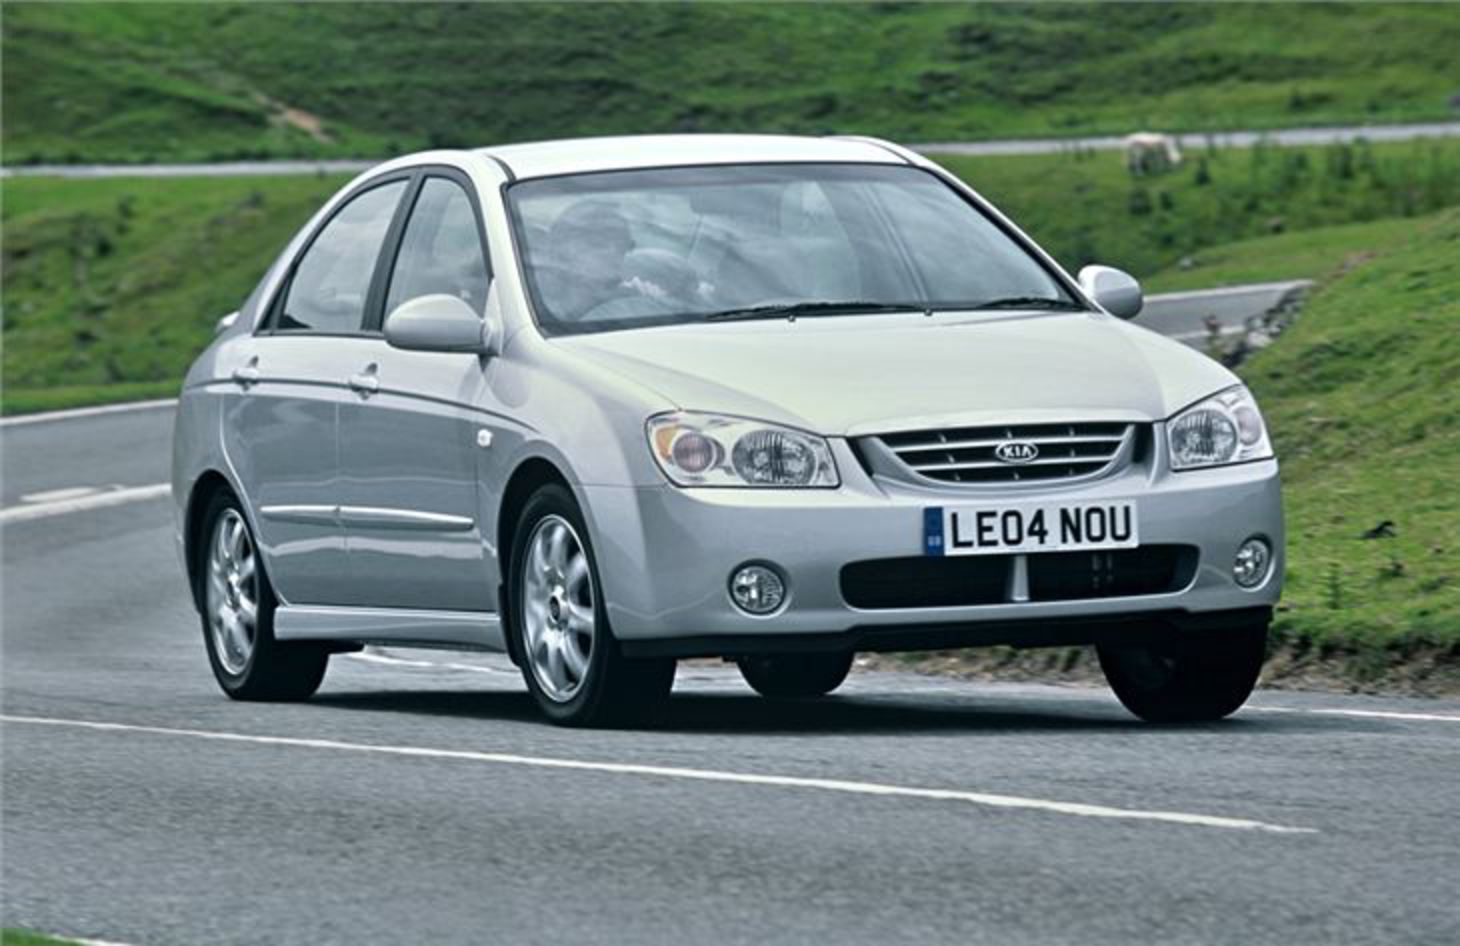 KIA Cerato 2004 - Car Review | Honest John